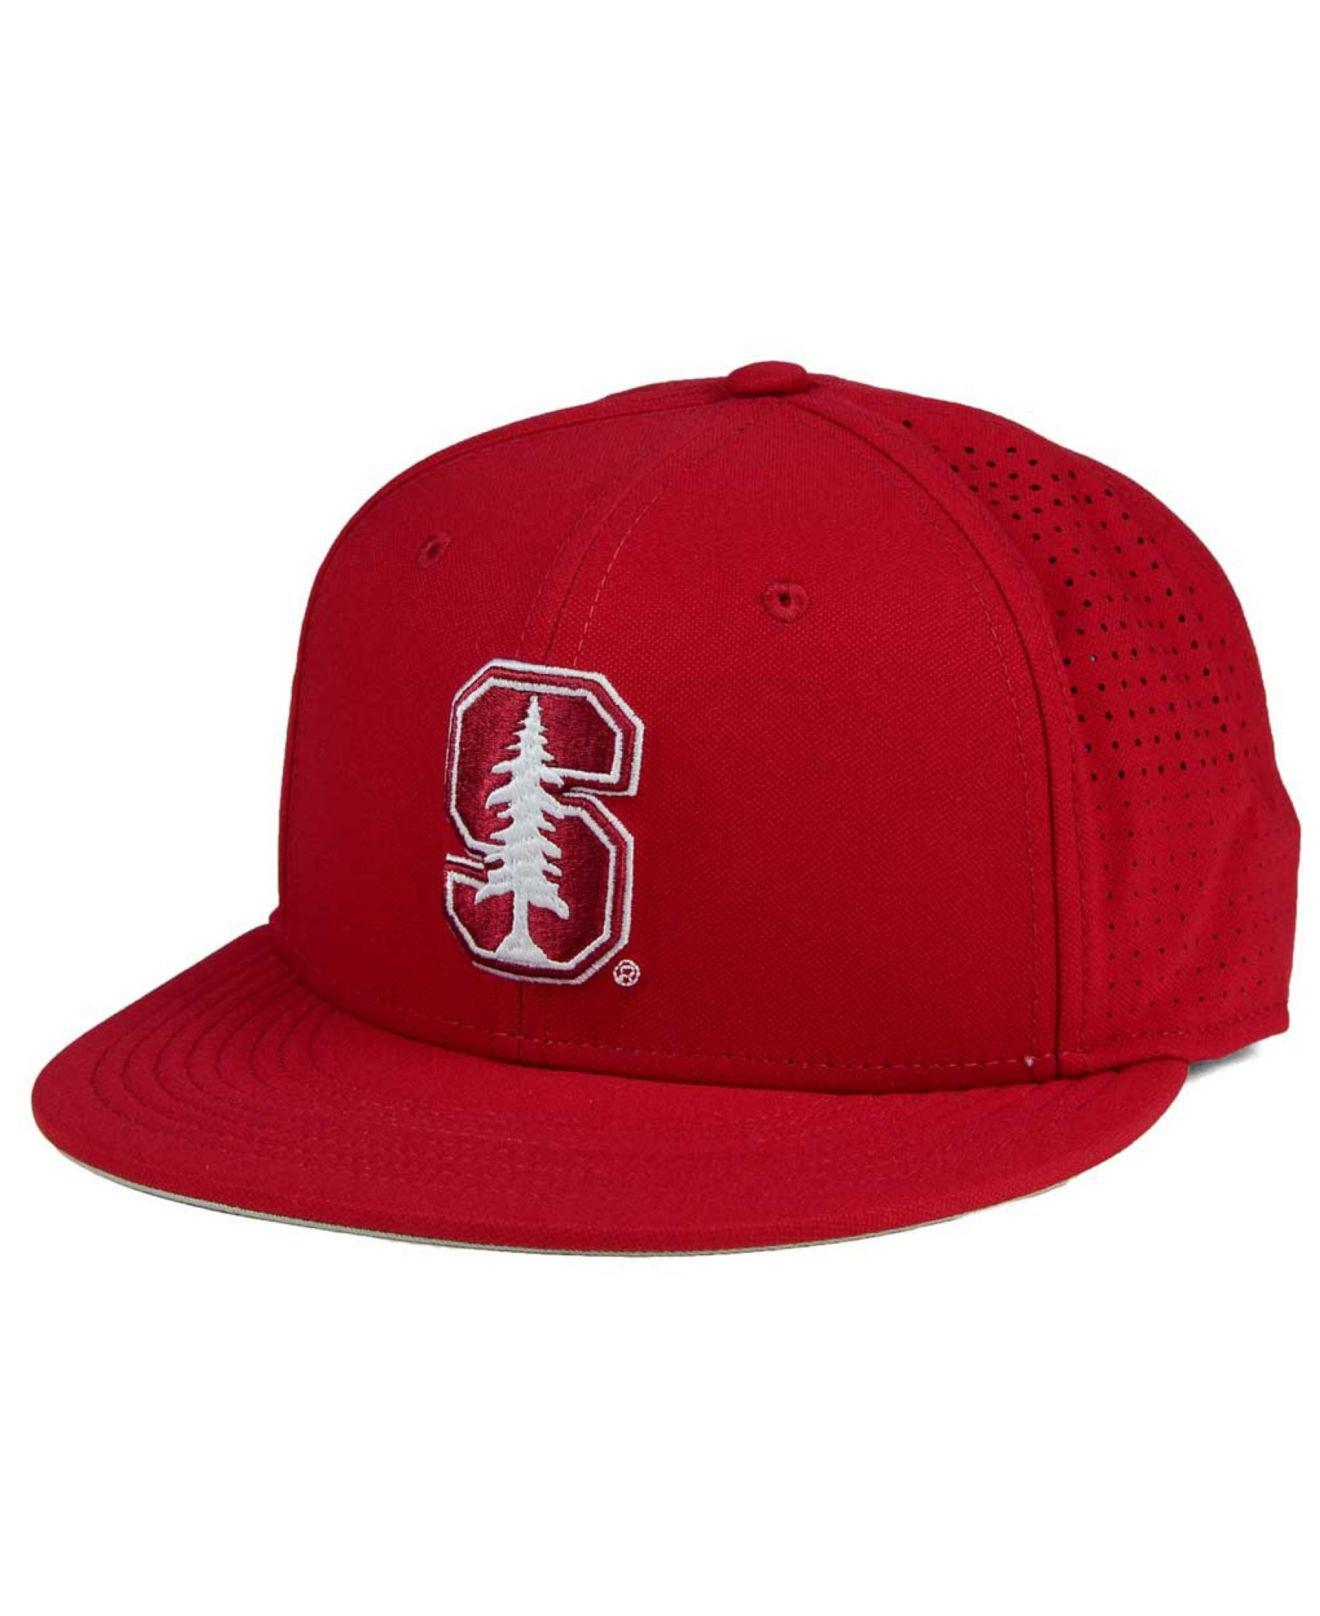 64485397c32cd Lyst - Nike Stanford Cardinal True Vapor Fitted Cap in Red for Men